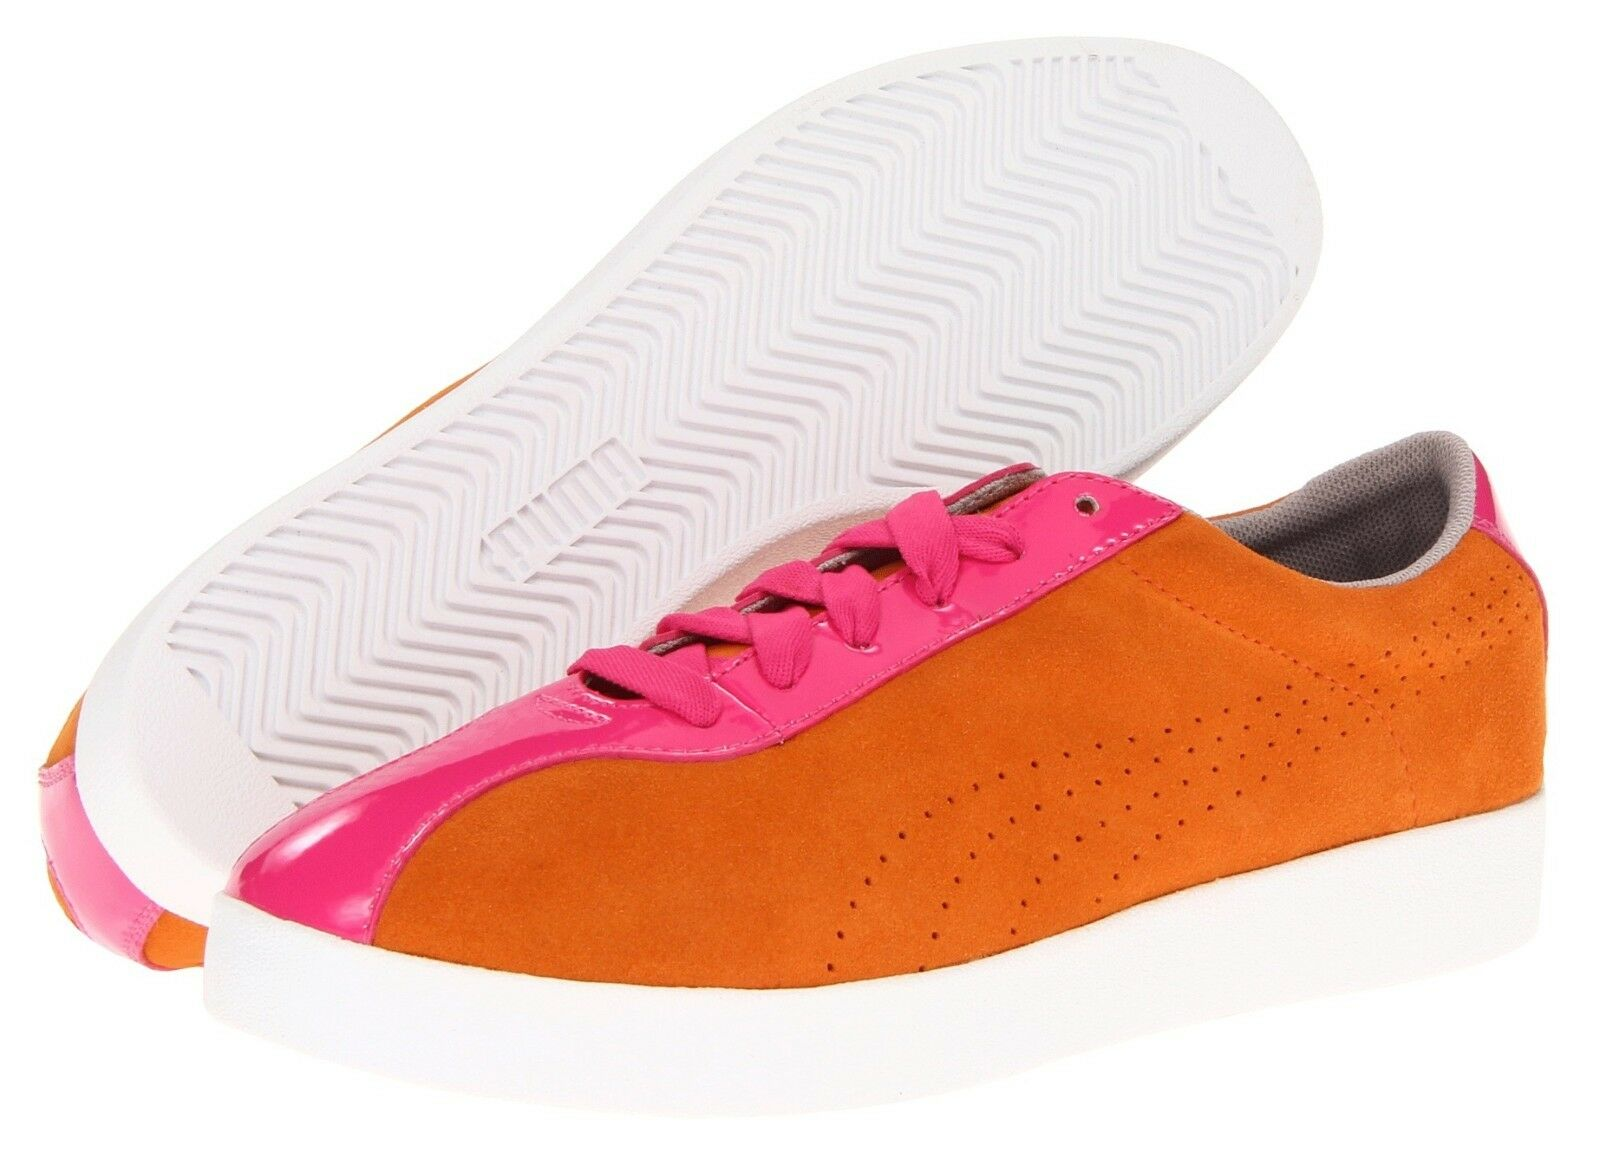 Puma MUNSTER Women's Sneakers Lace-Up Oxford Flat Shoe Orange/Popsicle 5.5 New